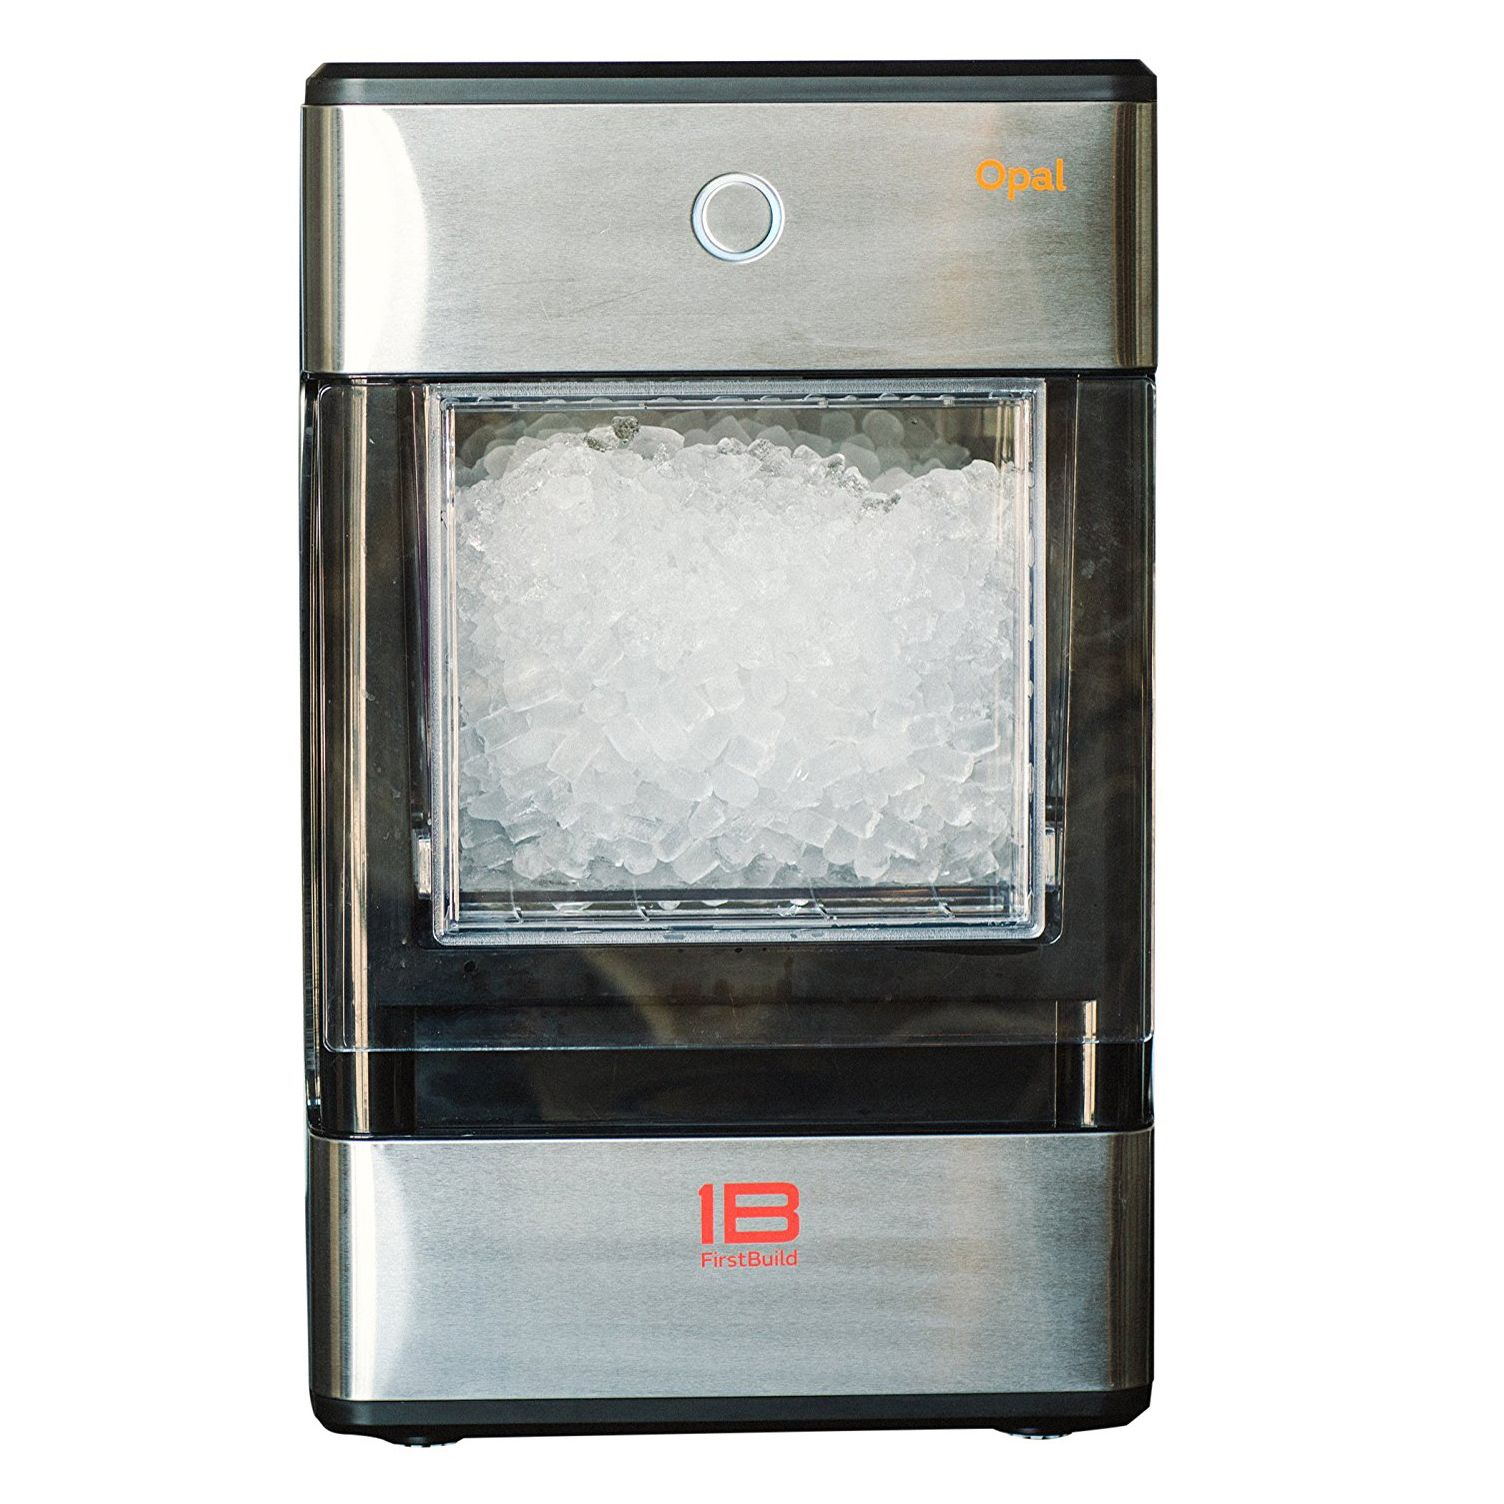 Firstbuild Nugget Ice Makers Nugget Ice Maker Ice Maker Sonic Ice Maker